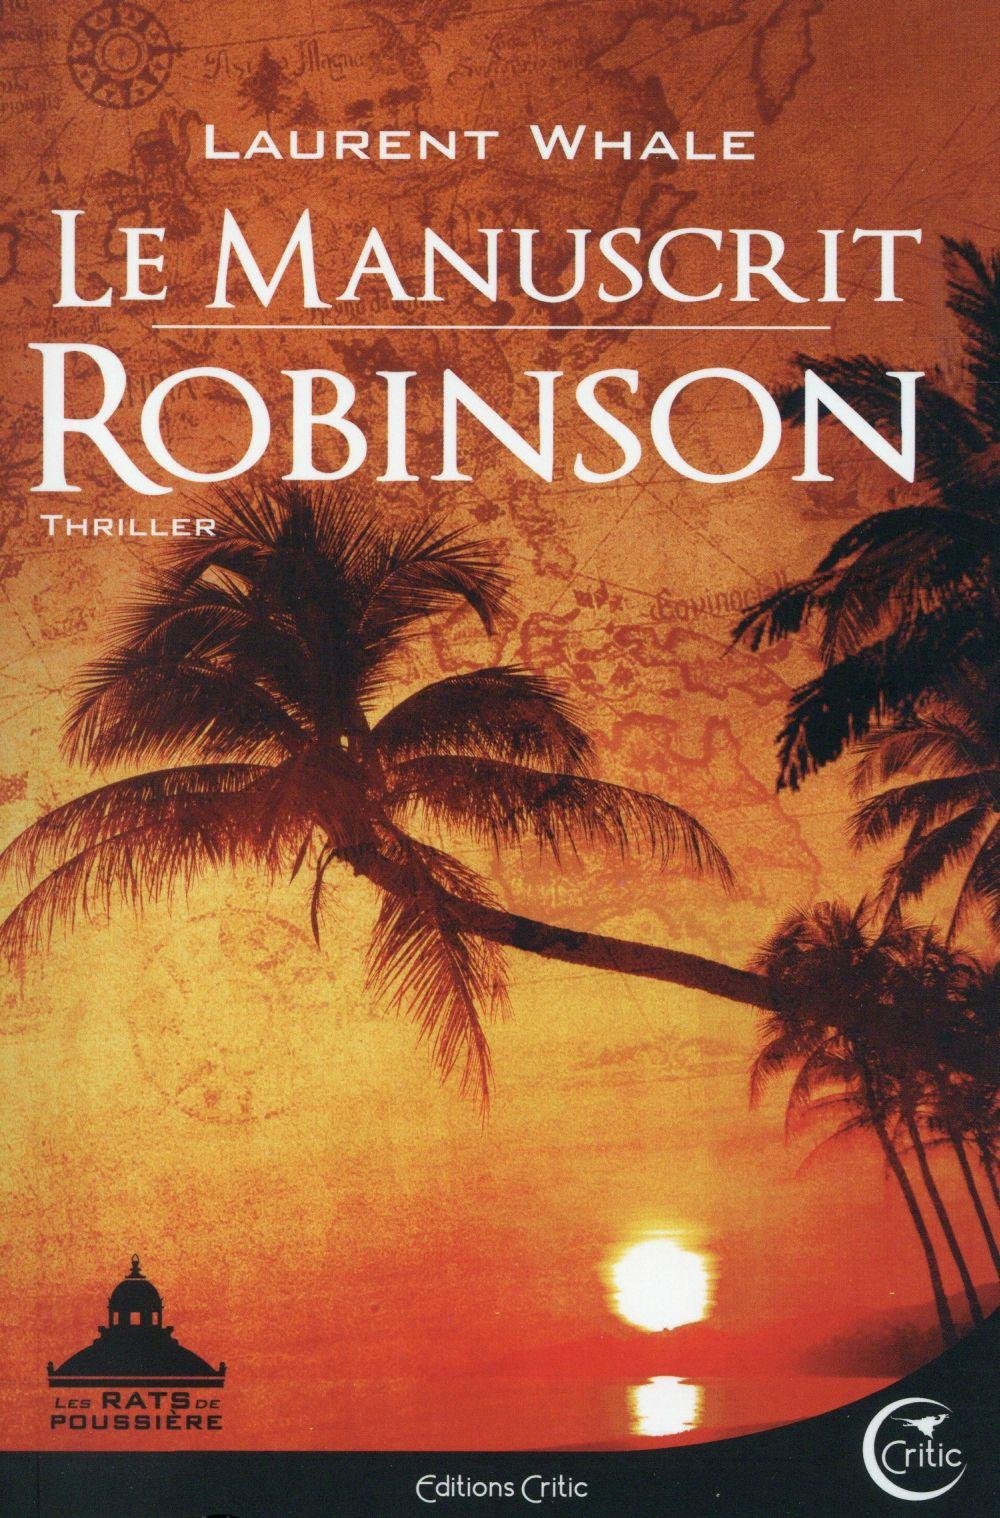 Le manuscrit robinson  - Laurent Whale